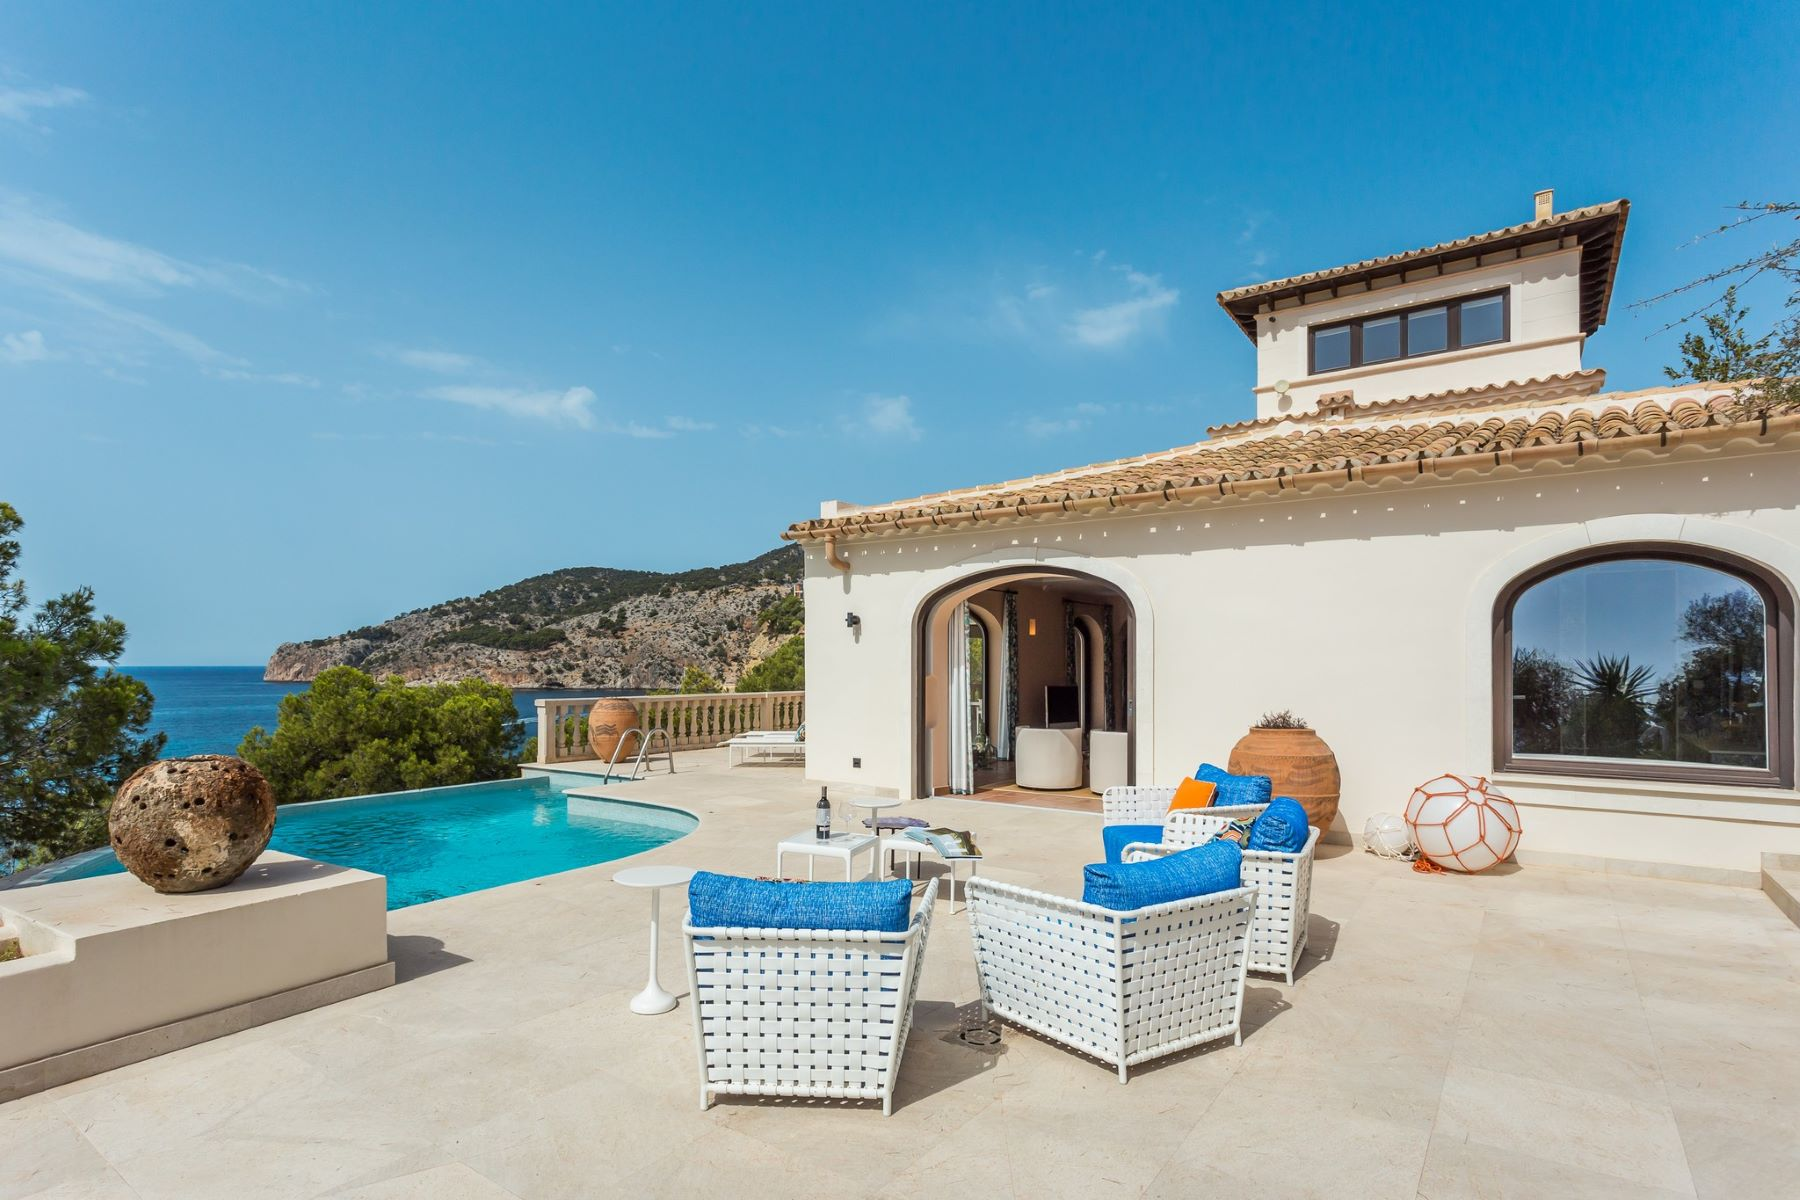 Single Family Homes for Sale at First line villa in Camp de Mar Port d Andratx, Balearic Islands Spain